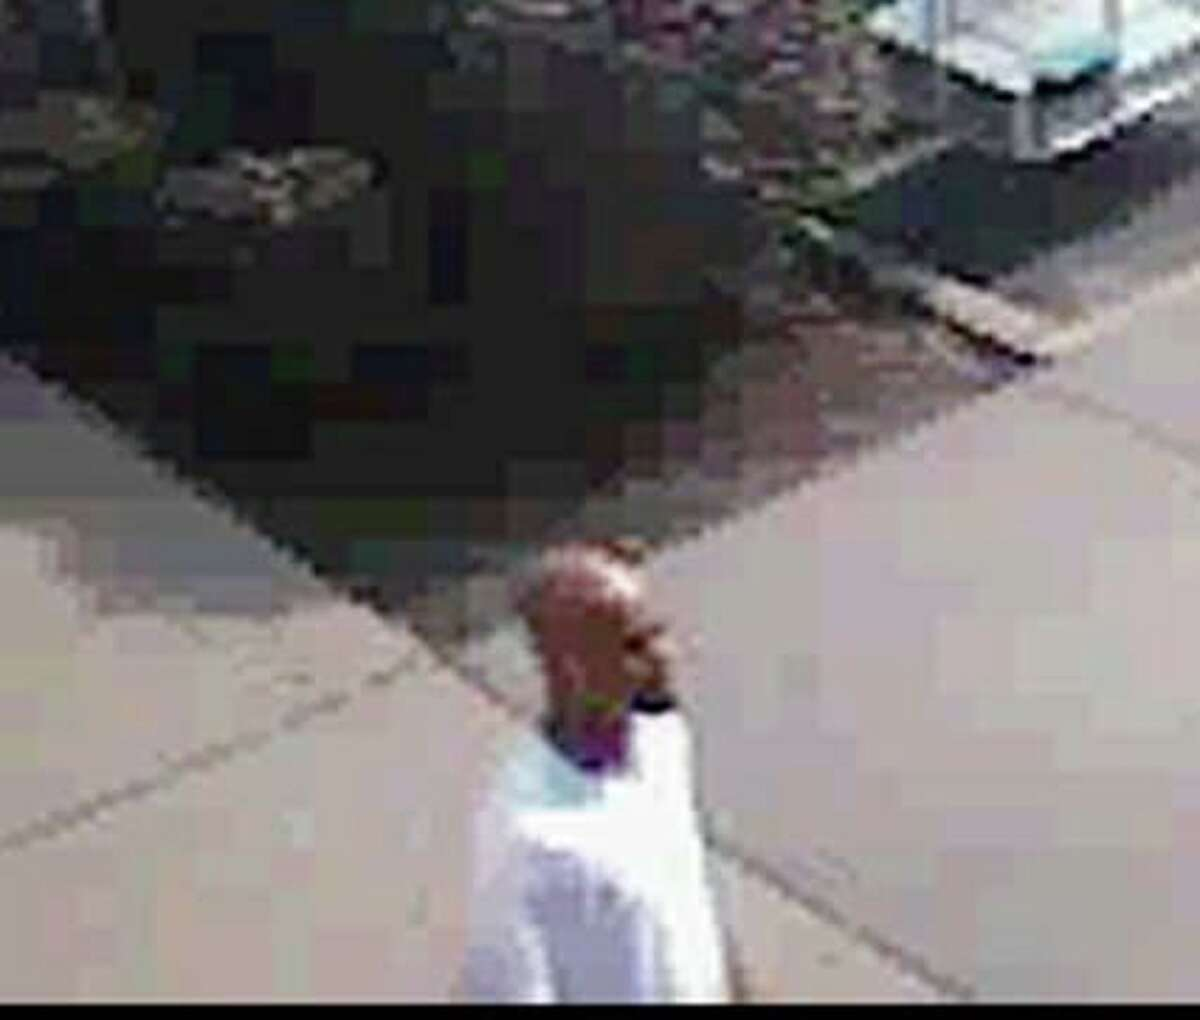 This is an image of the suspect in the robbery/shooting, which occurred Oct. 10, 2012 at Stop & Shop on Connecticut Ave. in Norwalk.